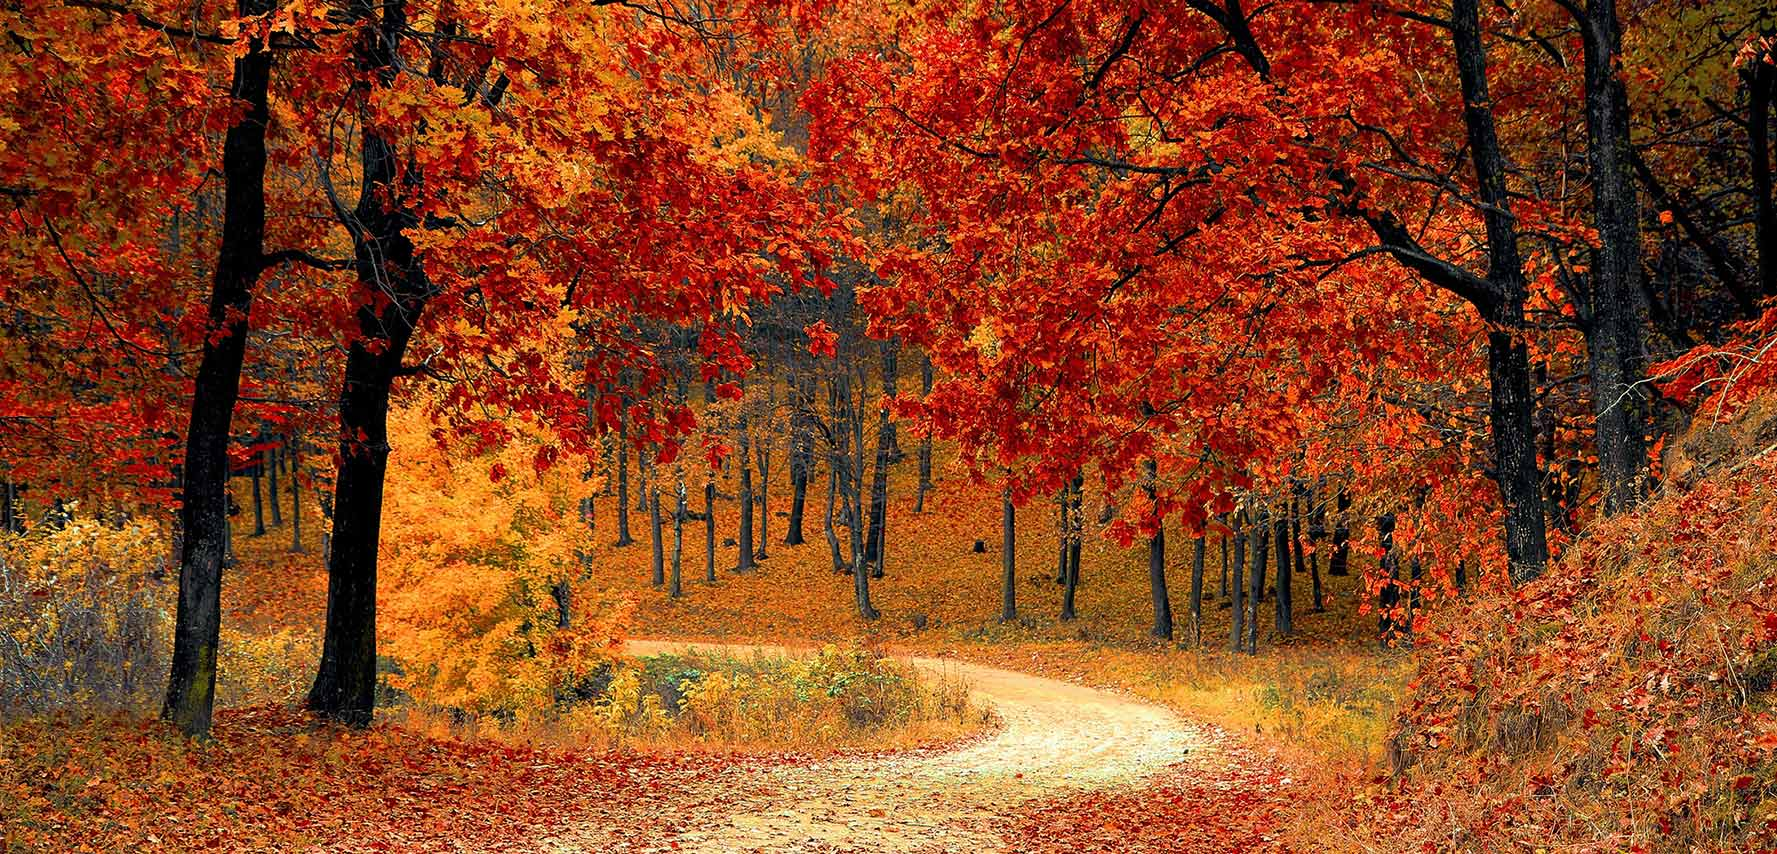 Orange and red trees along a path